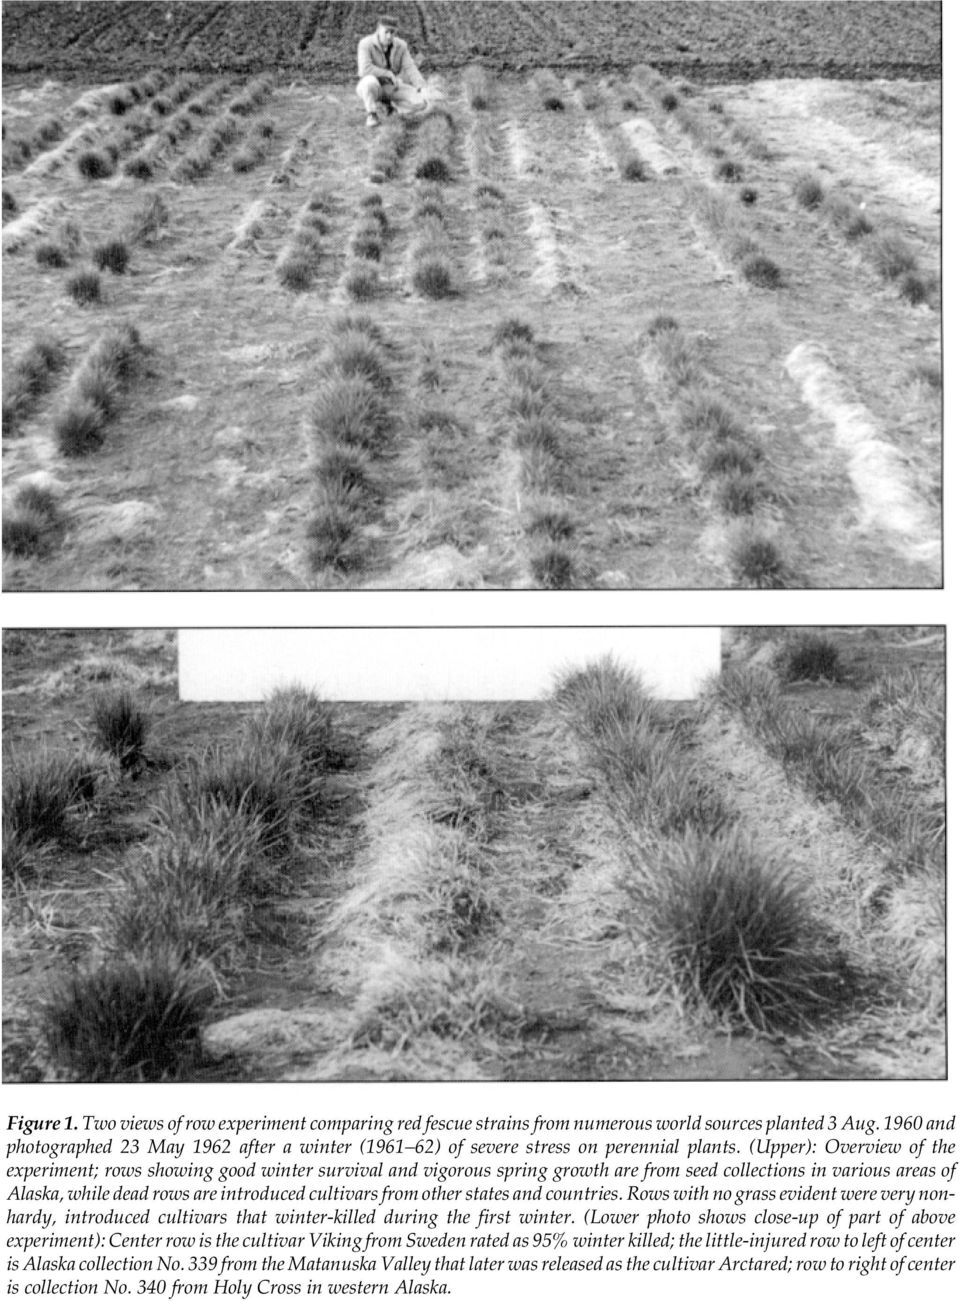 (Upper): Overview of the experiment; rows showing good winter survival and vigorous spring growth are from seed collections in various areas of Alaska, while dead rows are introduced cultivars from